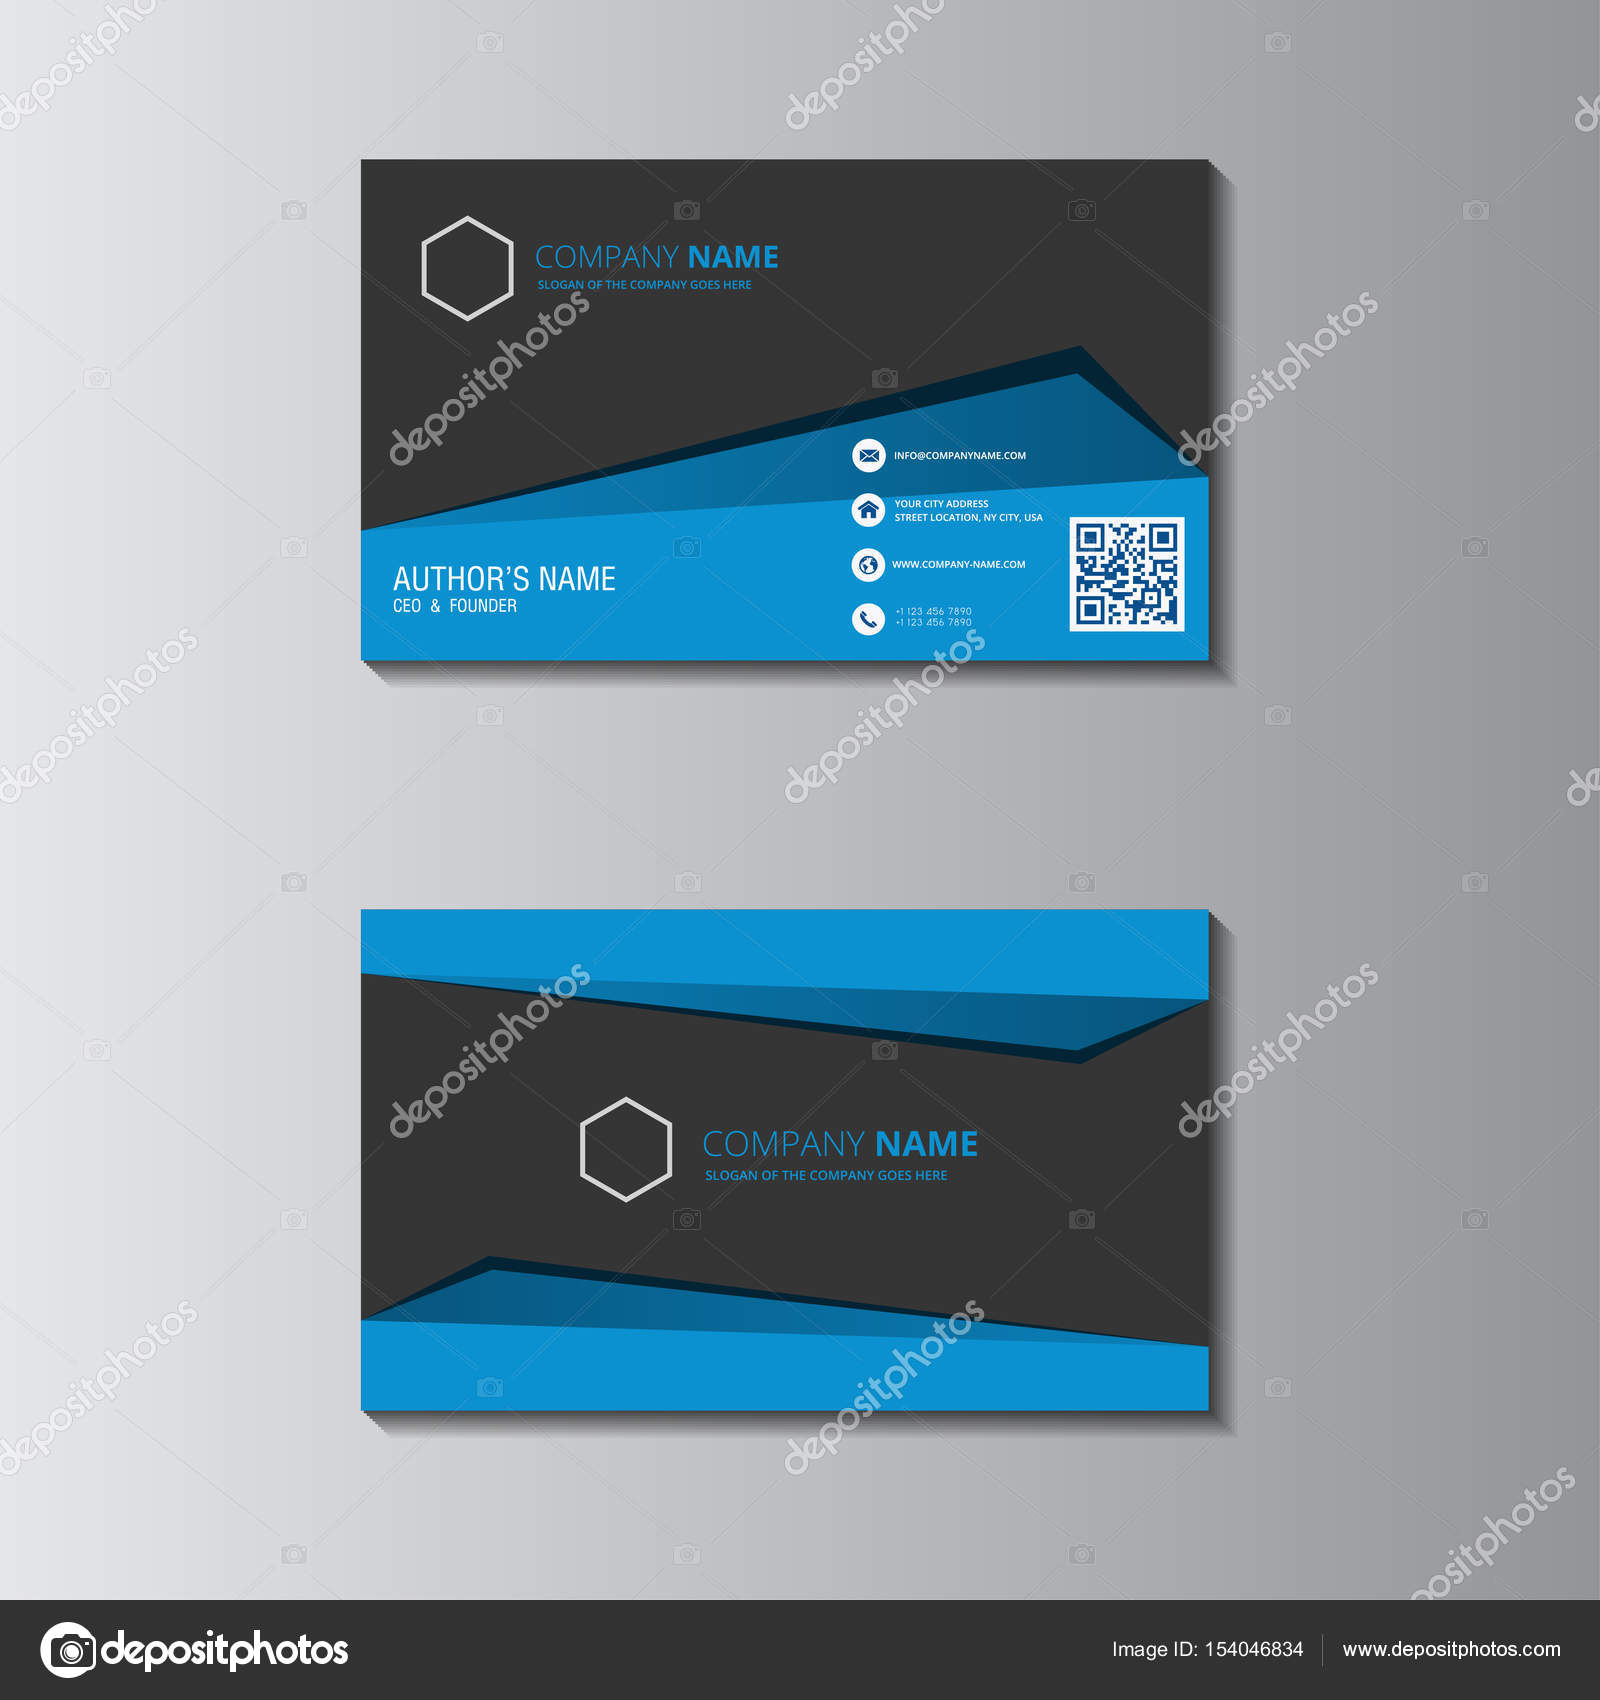 vector design formal blue modern business card — Stock Vector ...